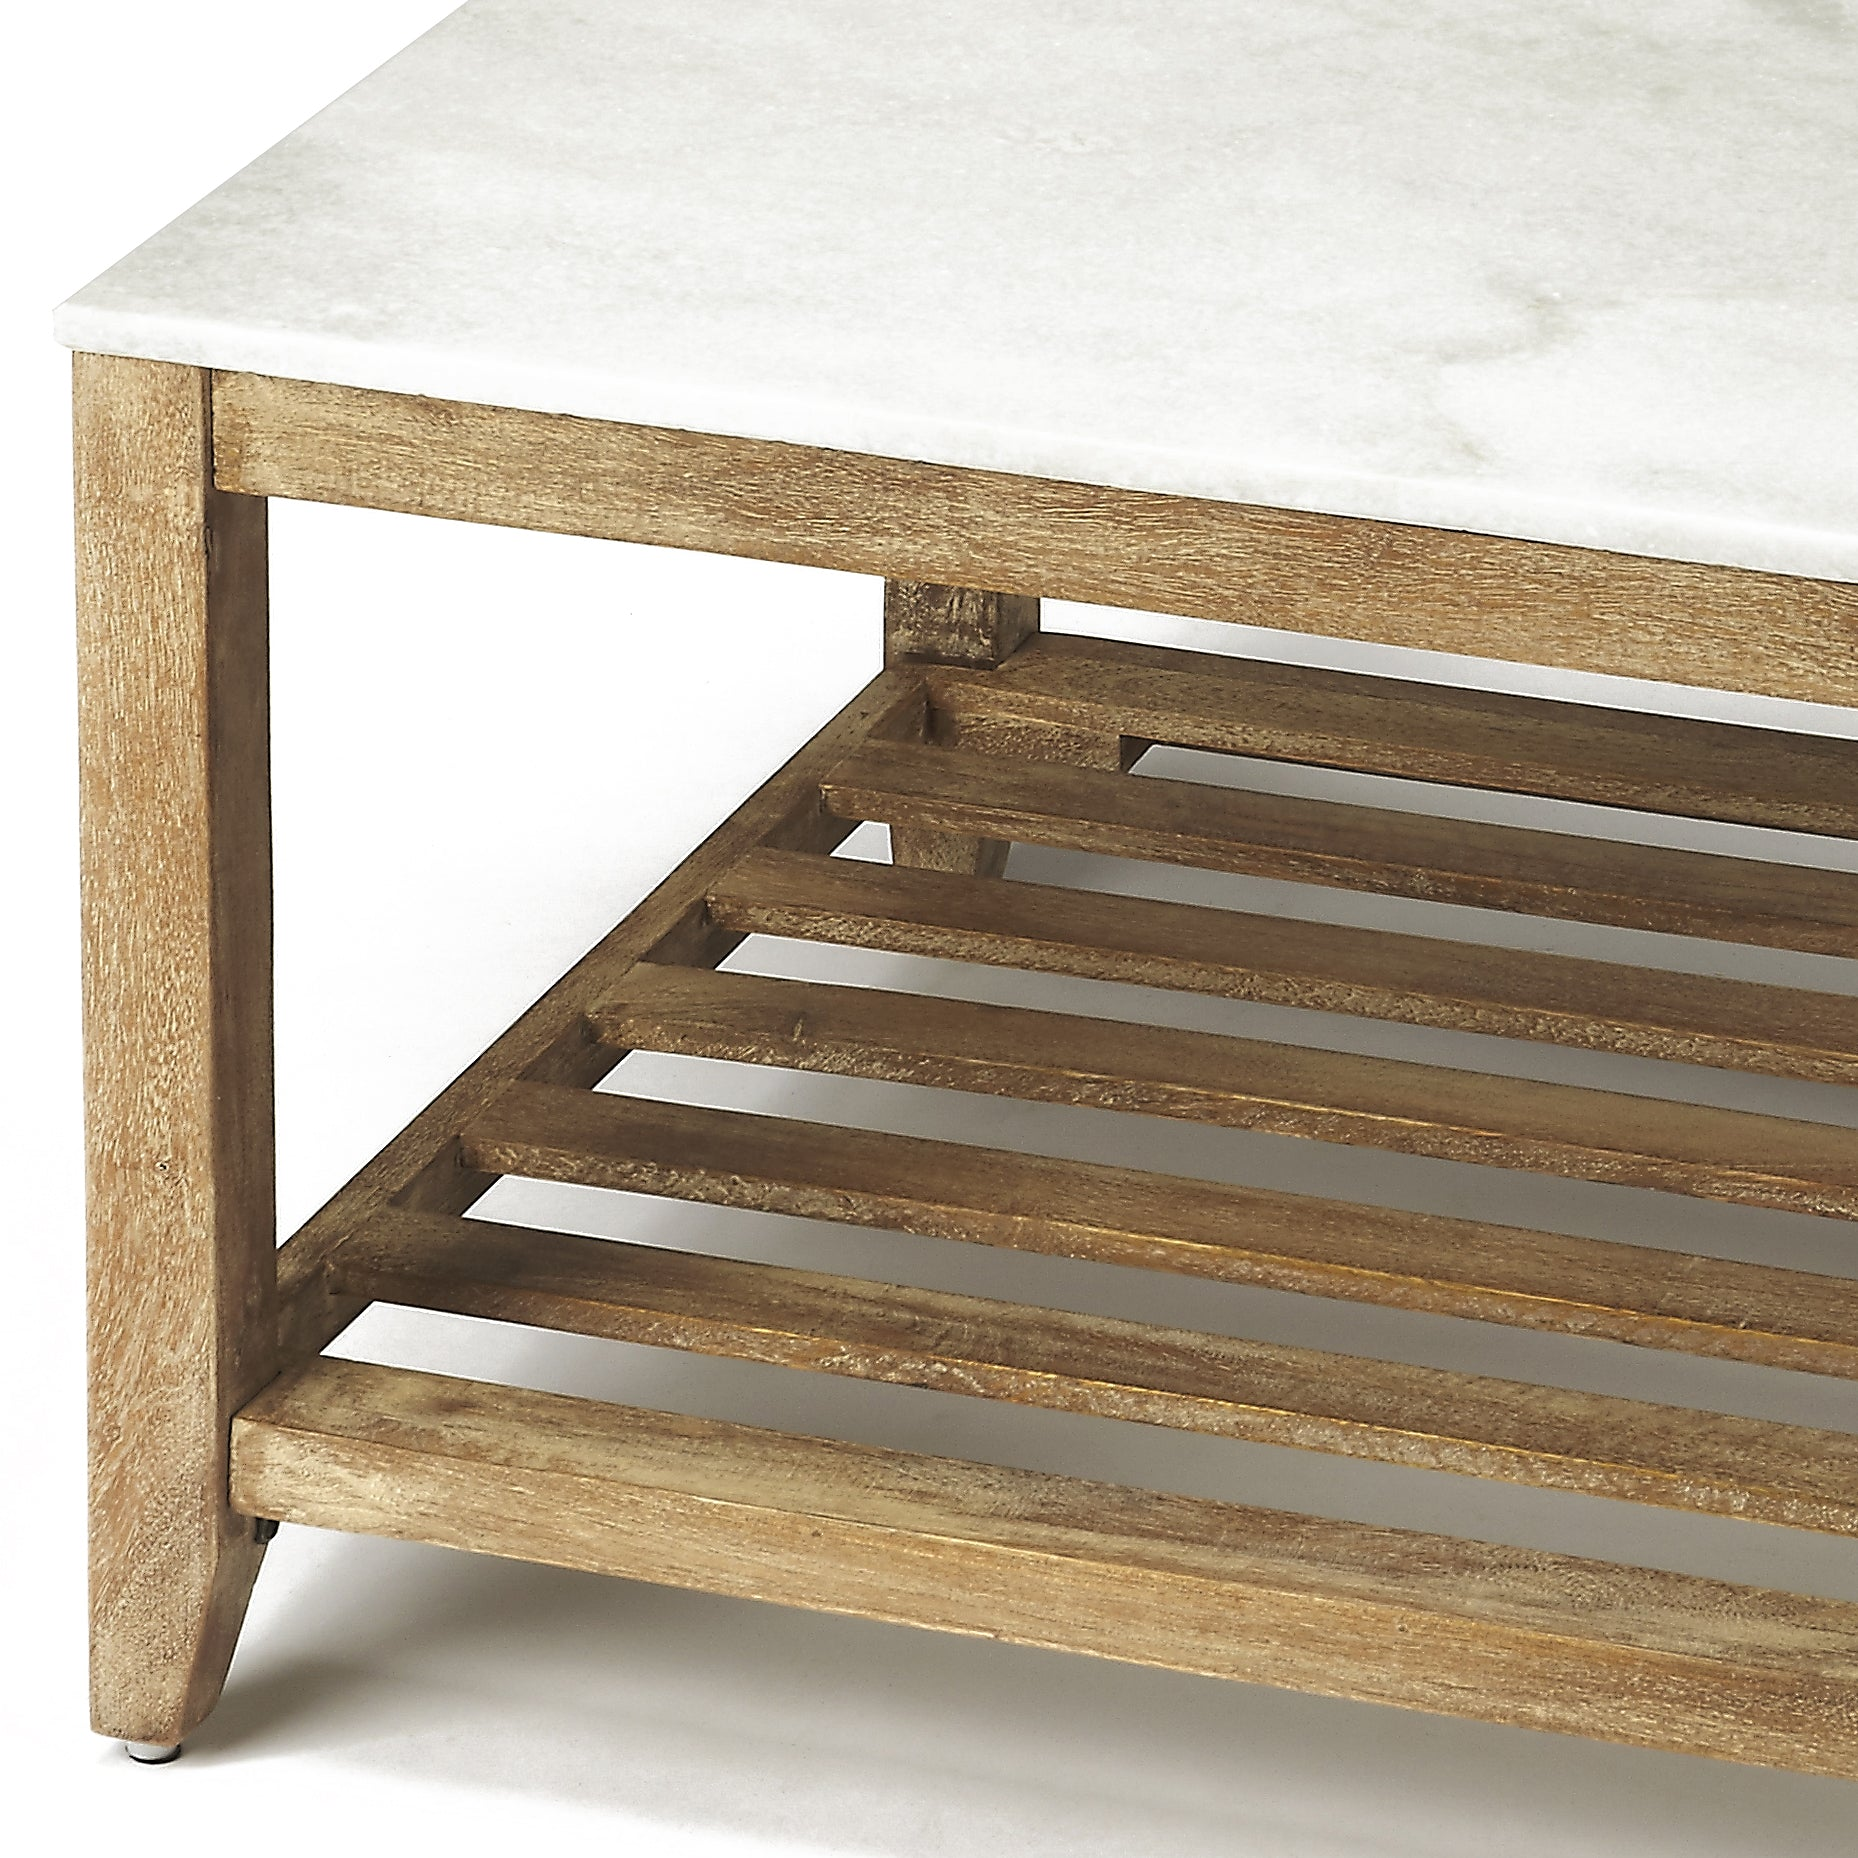 Marble and Wood Square Coffee Table